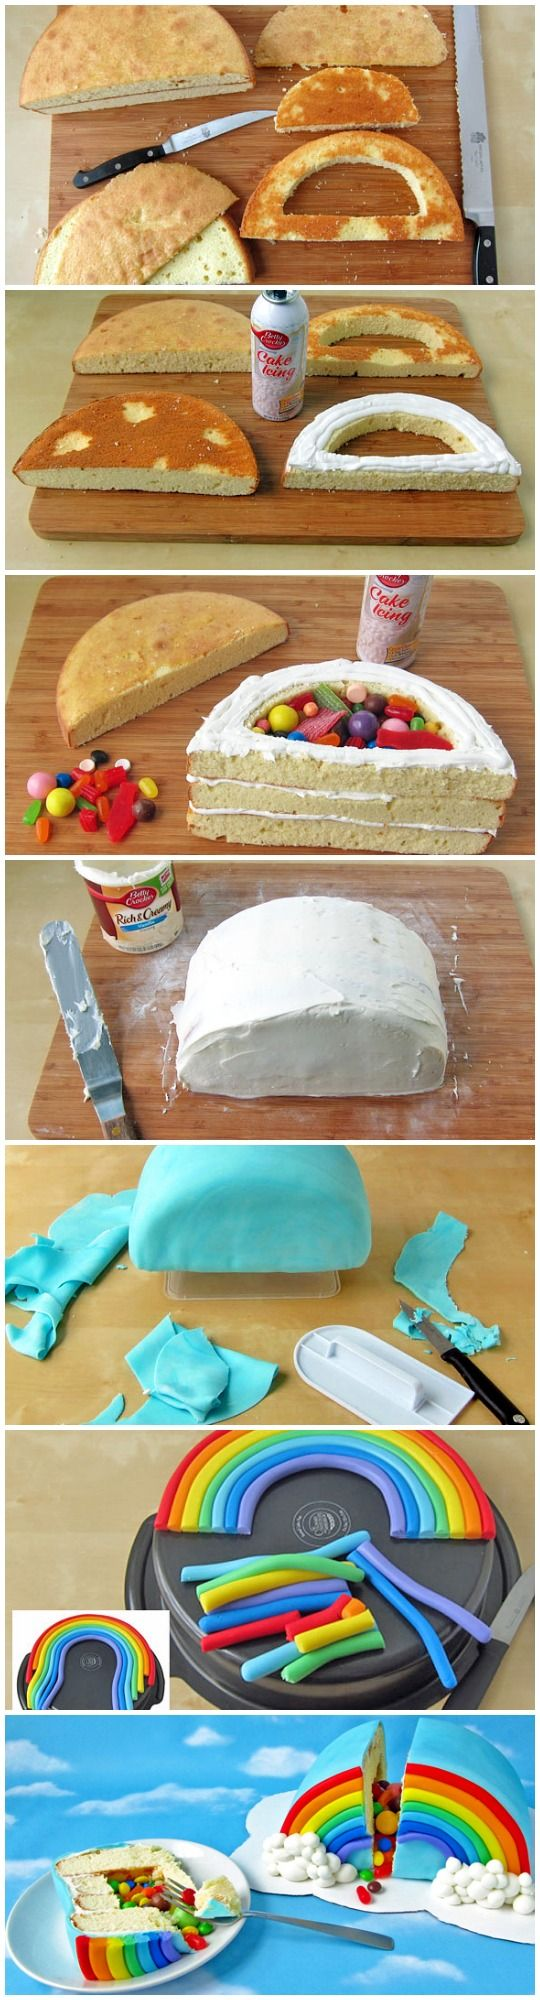 pretty neat rainbow cake